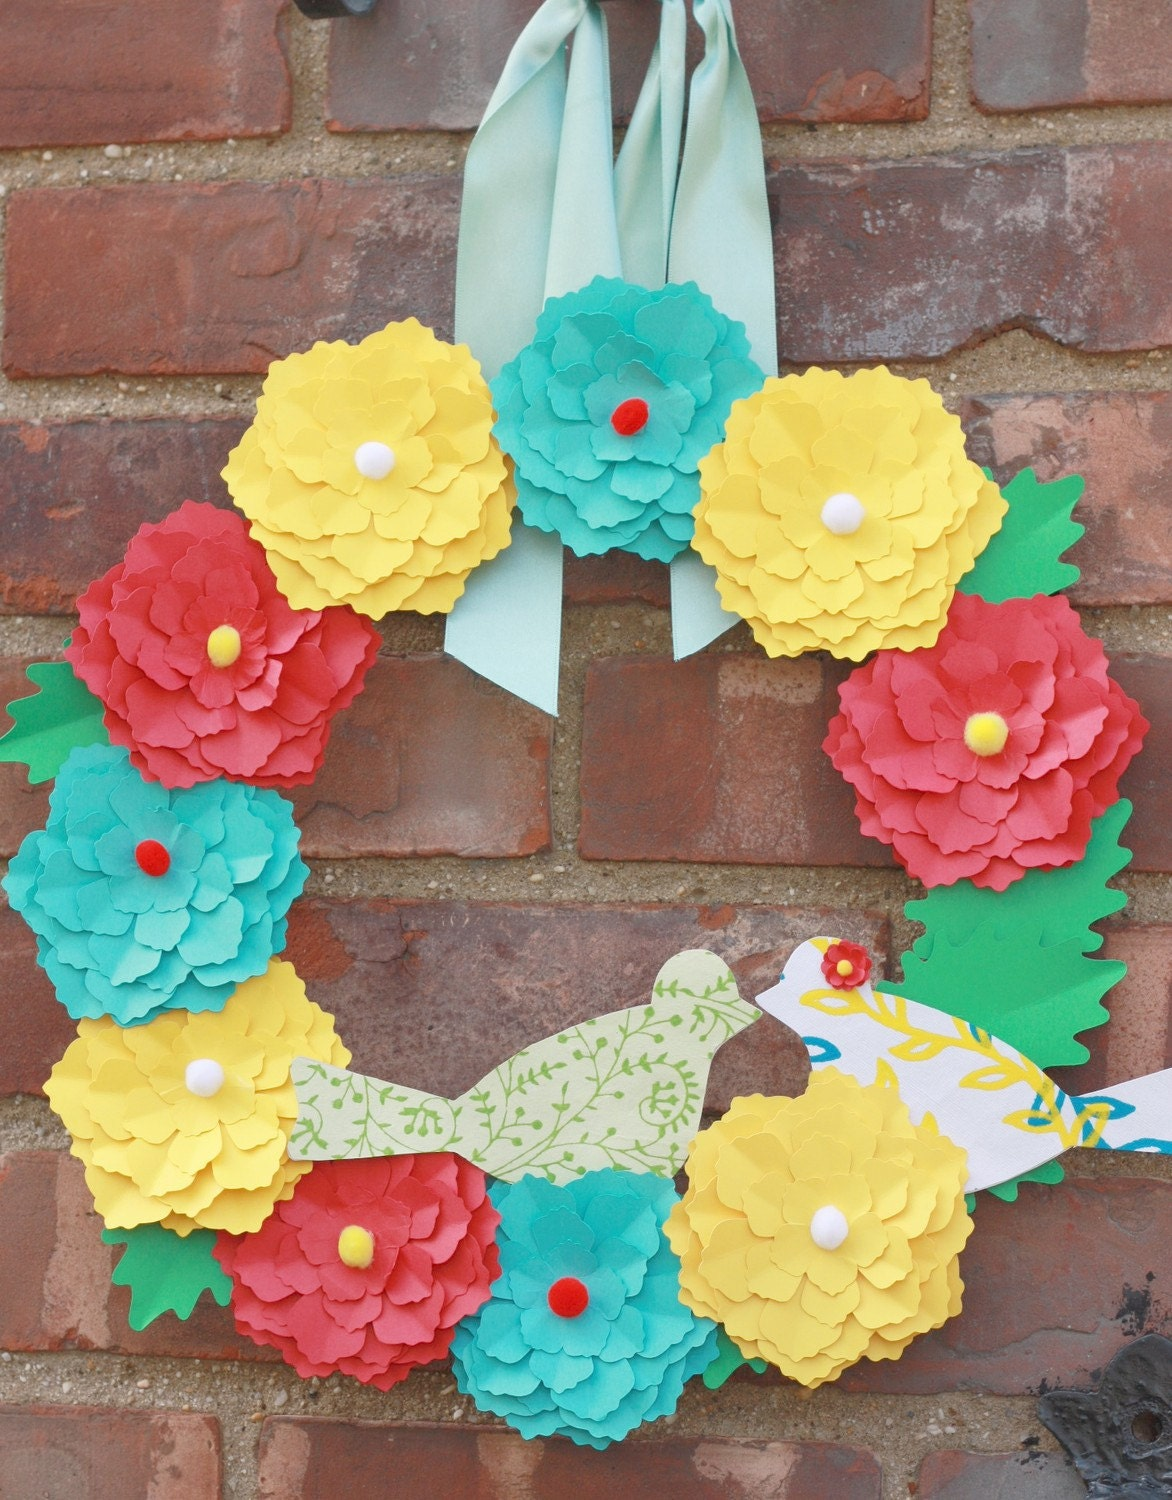 Customizable Paper Blossom Wreath Kit- DIY